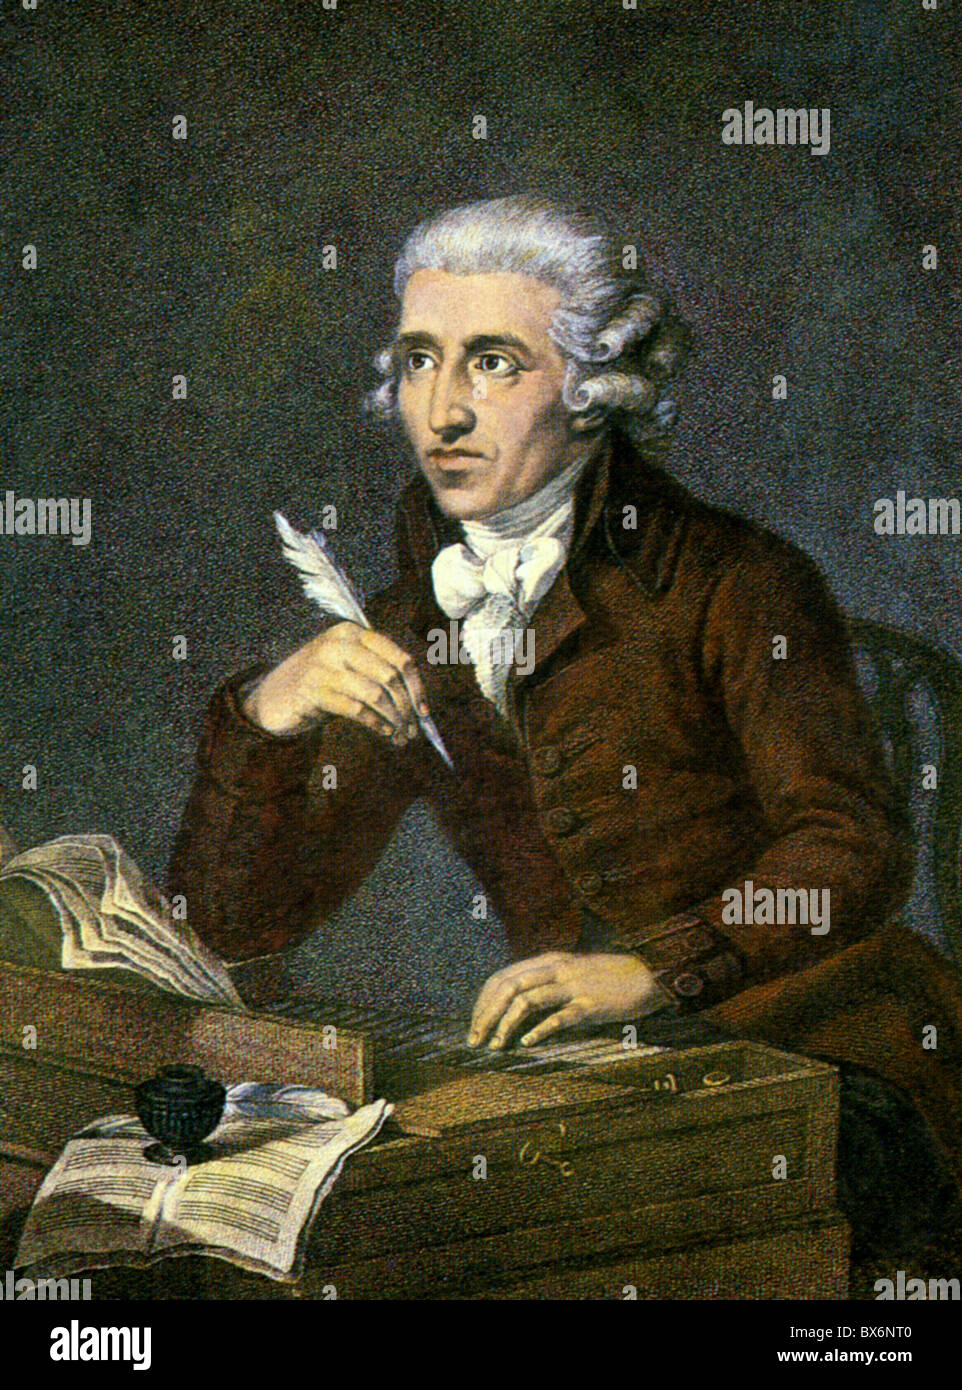 Haydn, Joseph, 31.3.1732 - 31.5.1809, Austrian composer, portrait, print after painting by Ludwig Gutterbrunn, circa - Stock Image